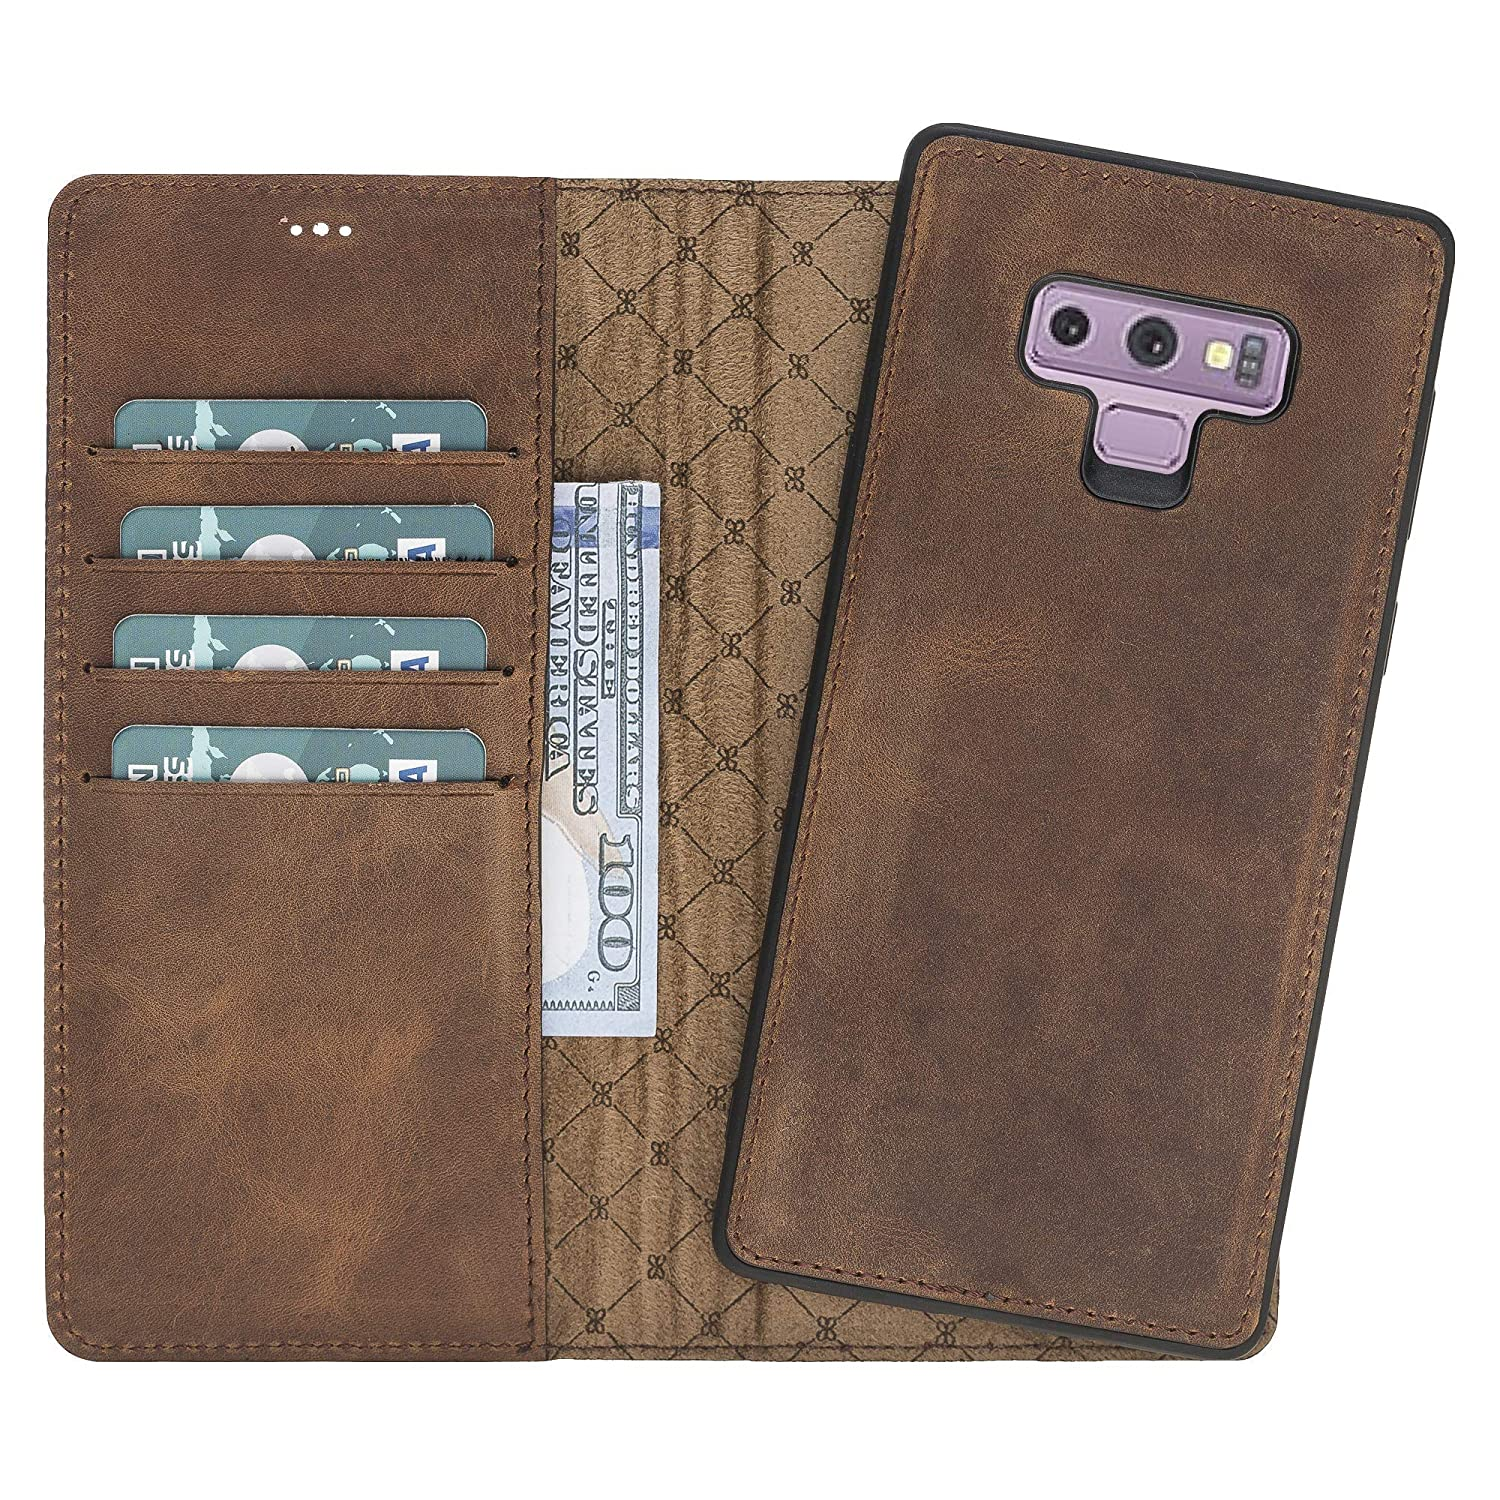 Samsung Galaxy Note 9 Leather Wallet Case, Note 9 Leather Case, Leather Galaxy Note 9 Wallet Case, Case For Samsung Galaxy Note 9, Samsung Note 9 Leather Case Wallet